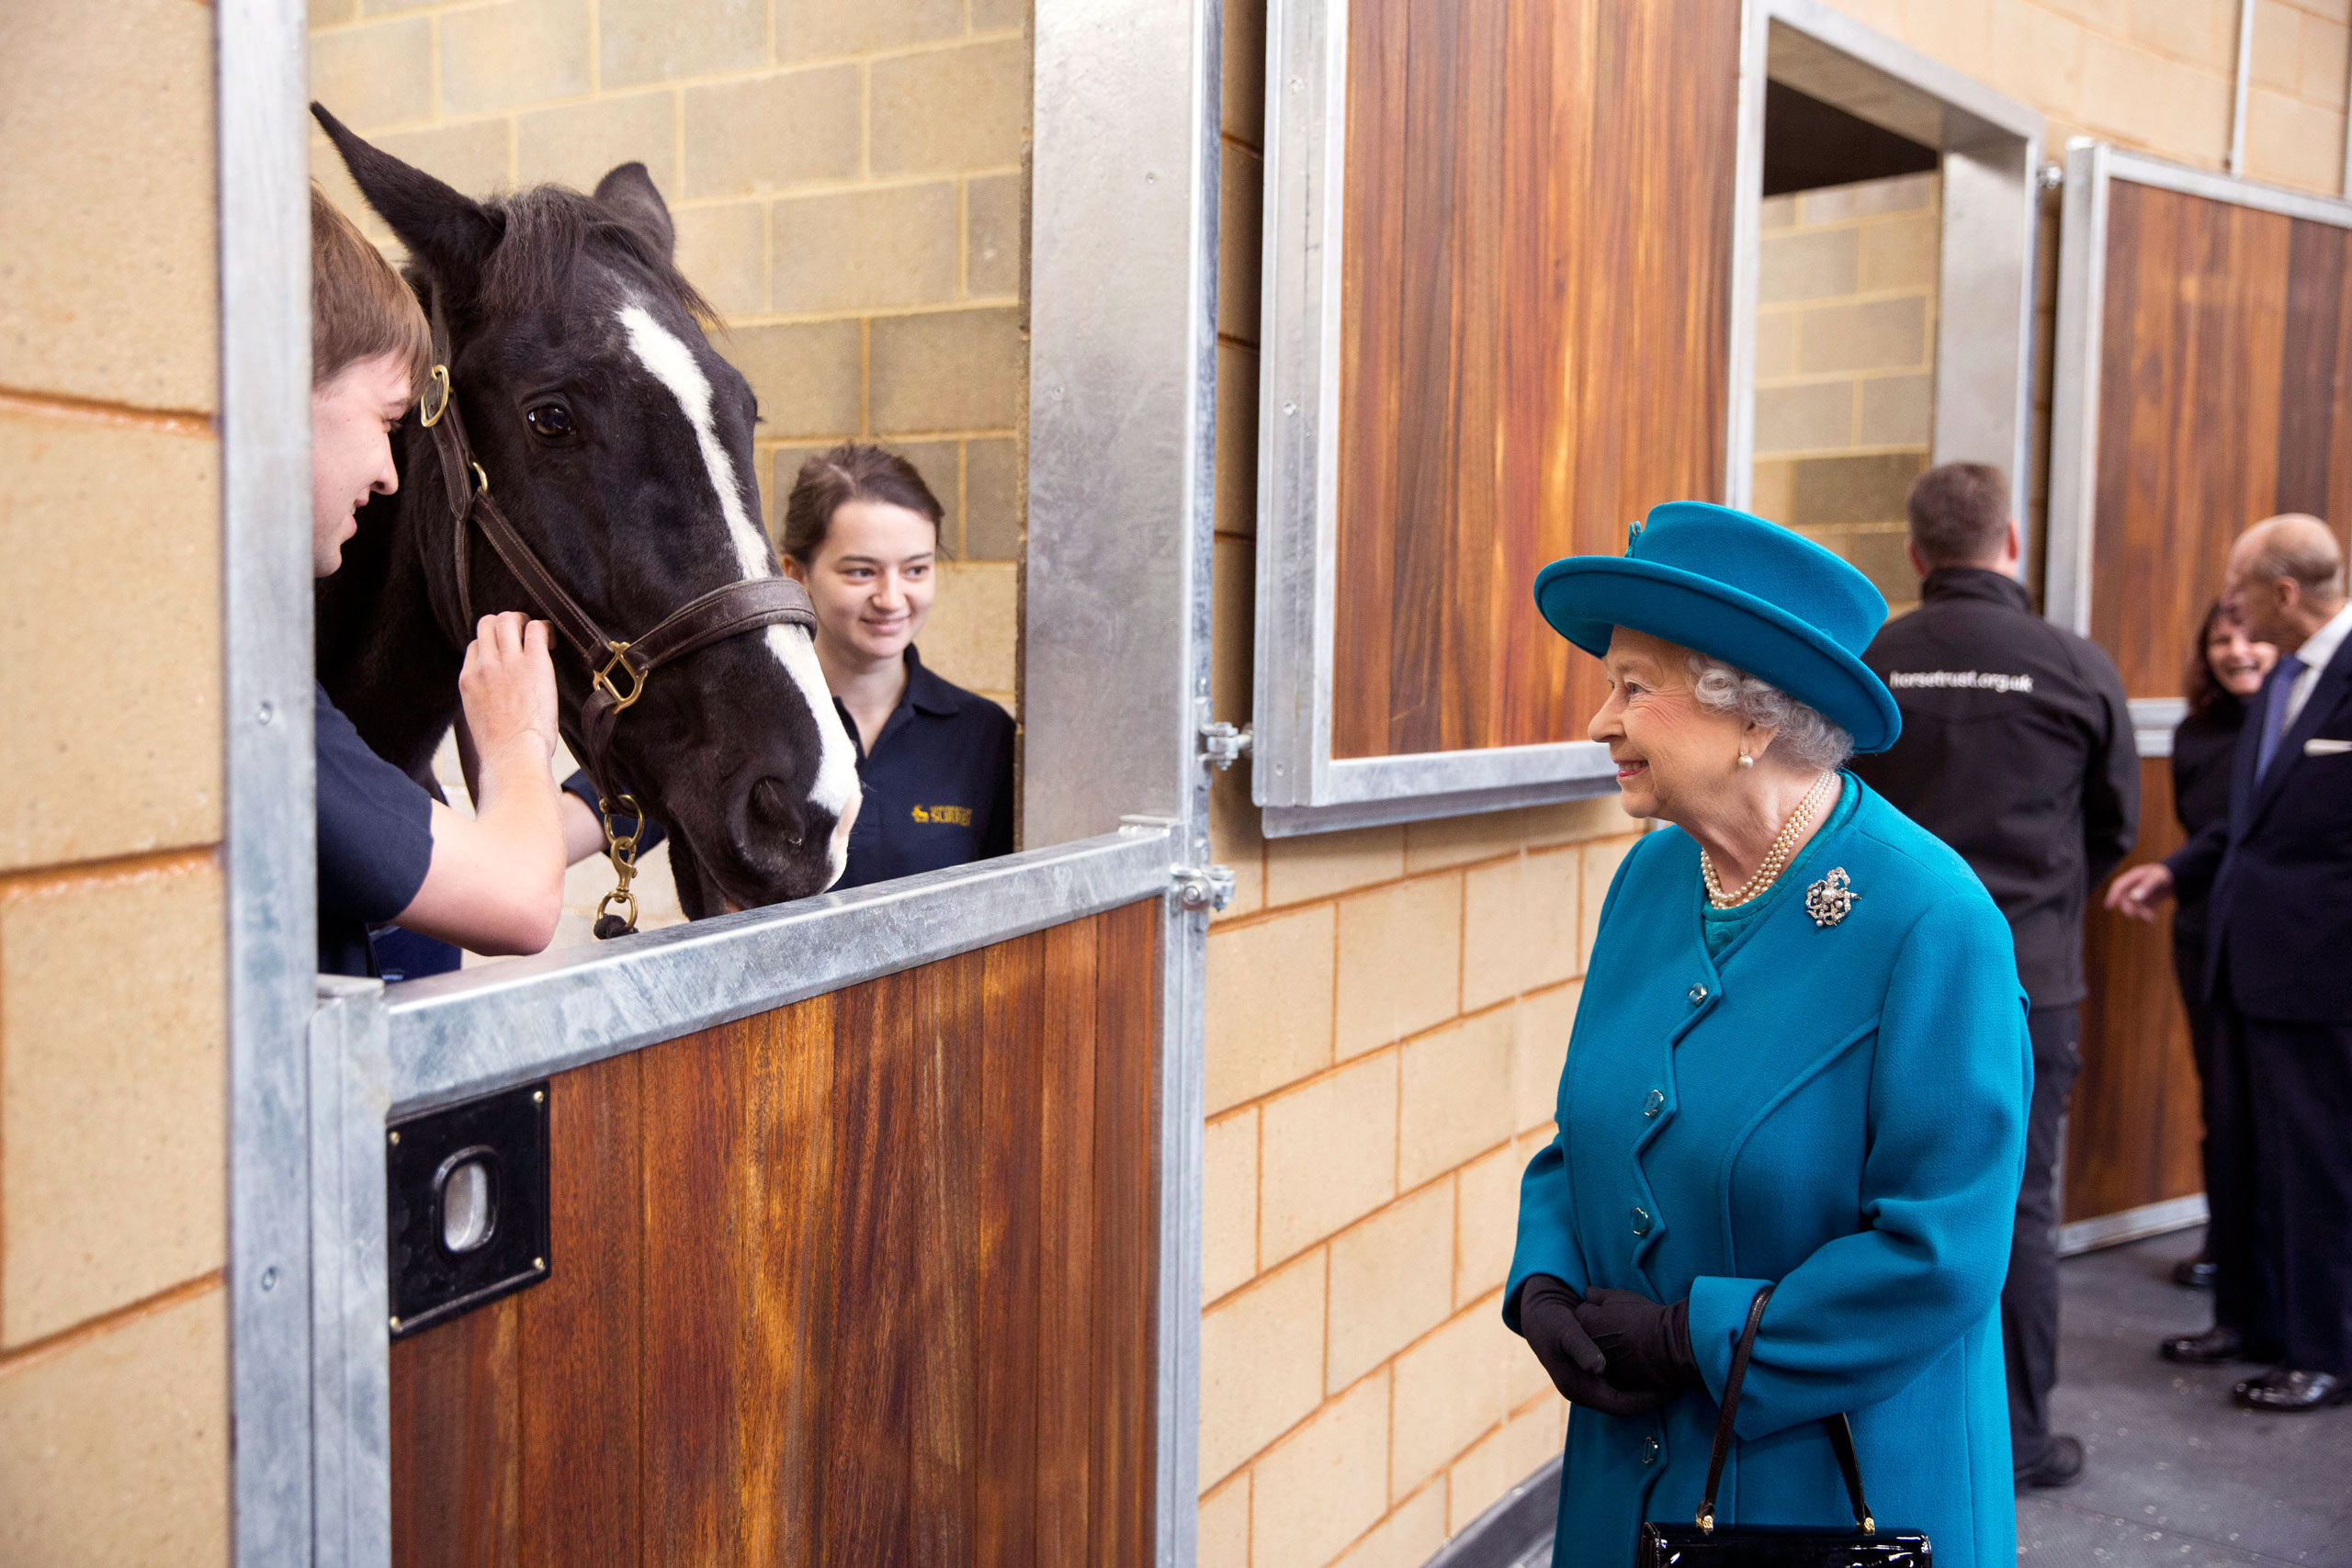 Queen Elizabeth II visits the Large Animals Clinical Skills Building where she met students undertaking equine examinations and working with livestock.                               Queen Elizabeth II arrived along with the Duke of Edinburgh at the University of Surrey in Guildford, England, to officially open the university's new School of Veterinary Medicine. Oct. 15, 2015.